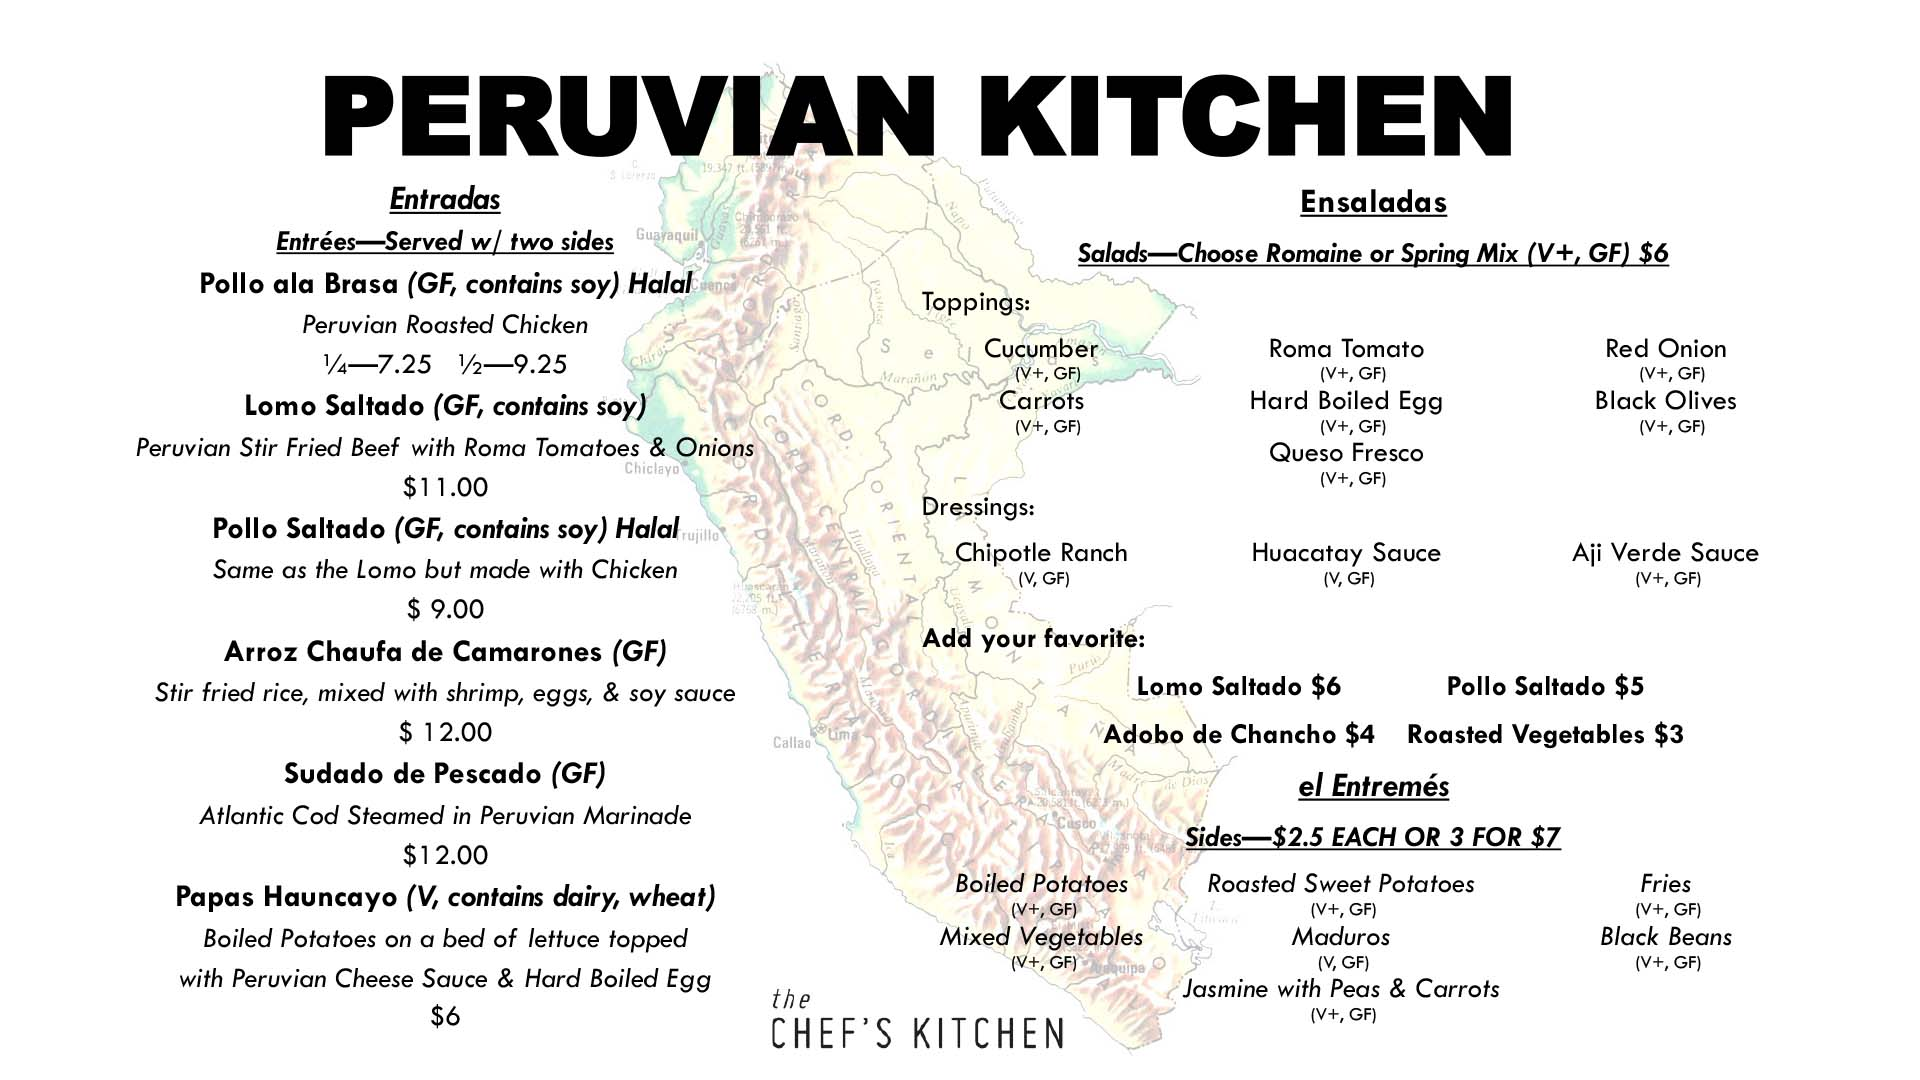 Peruvian Kitchen Menu